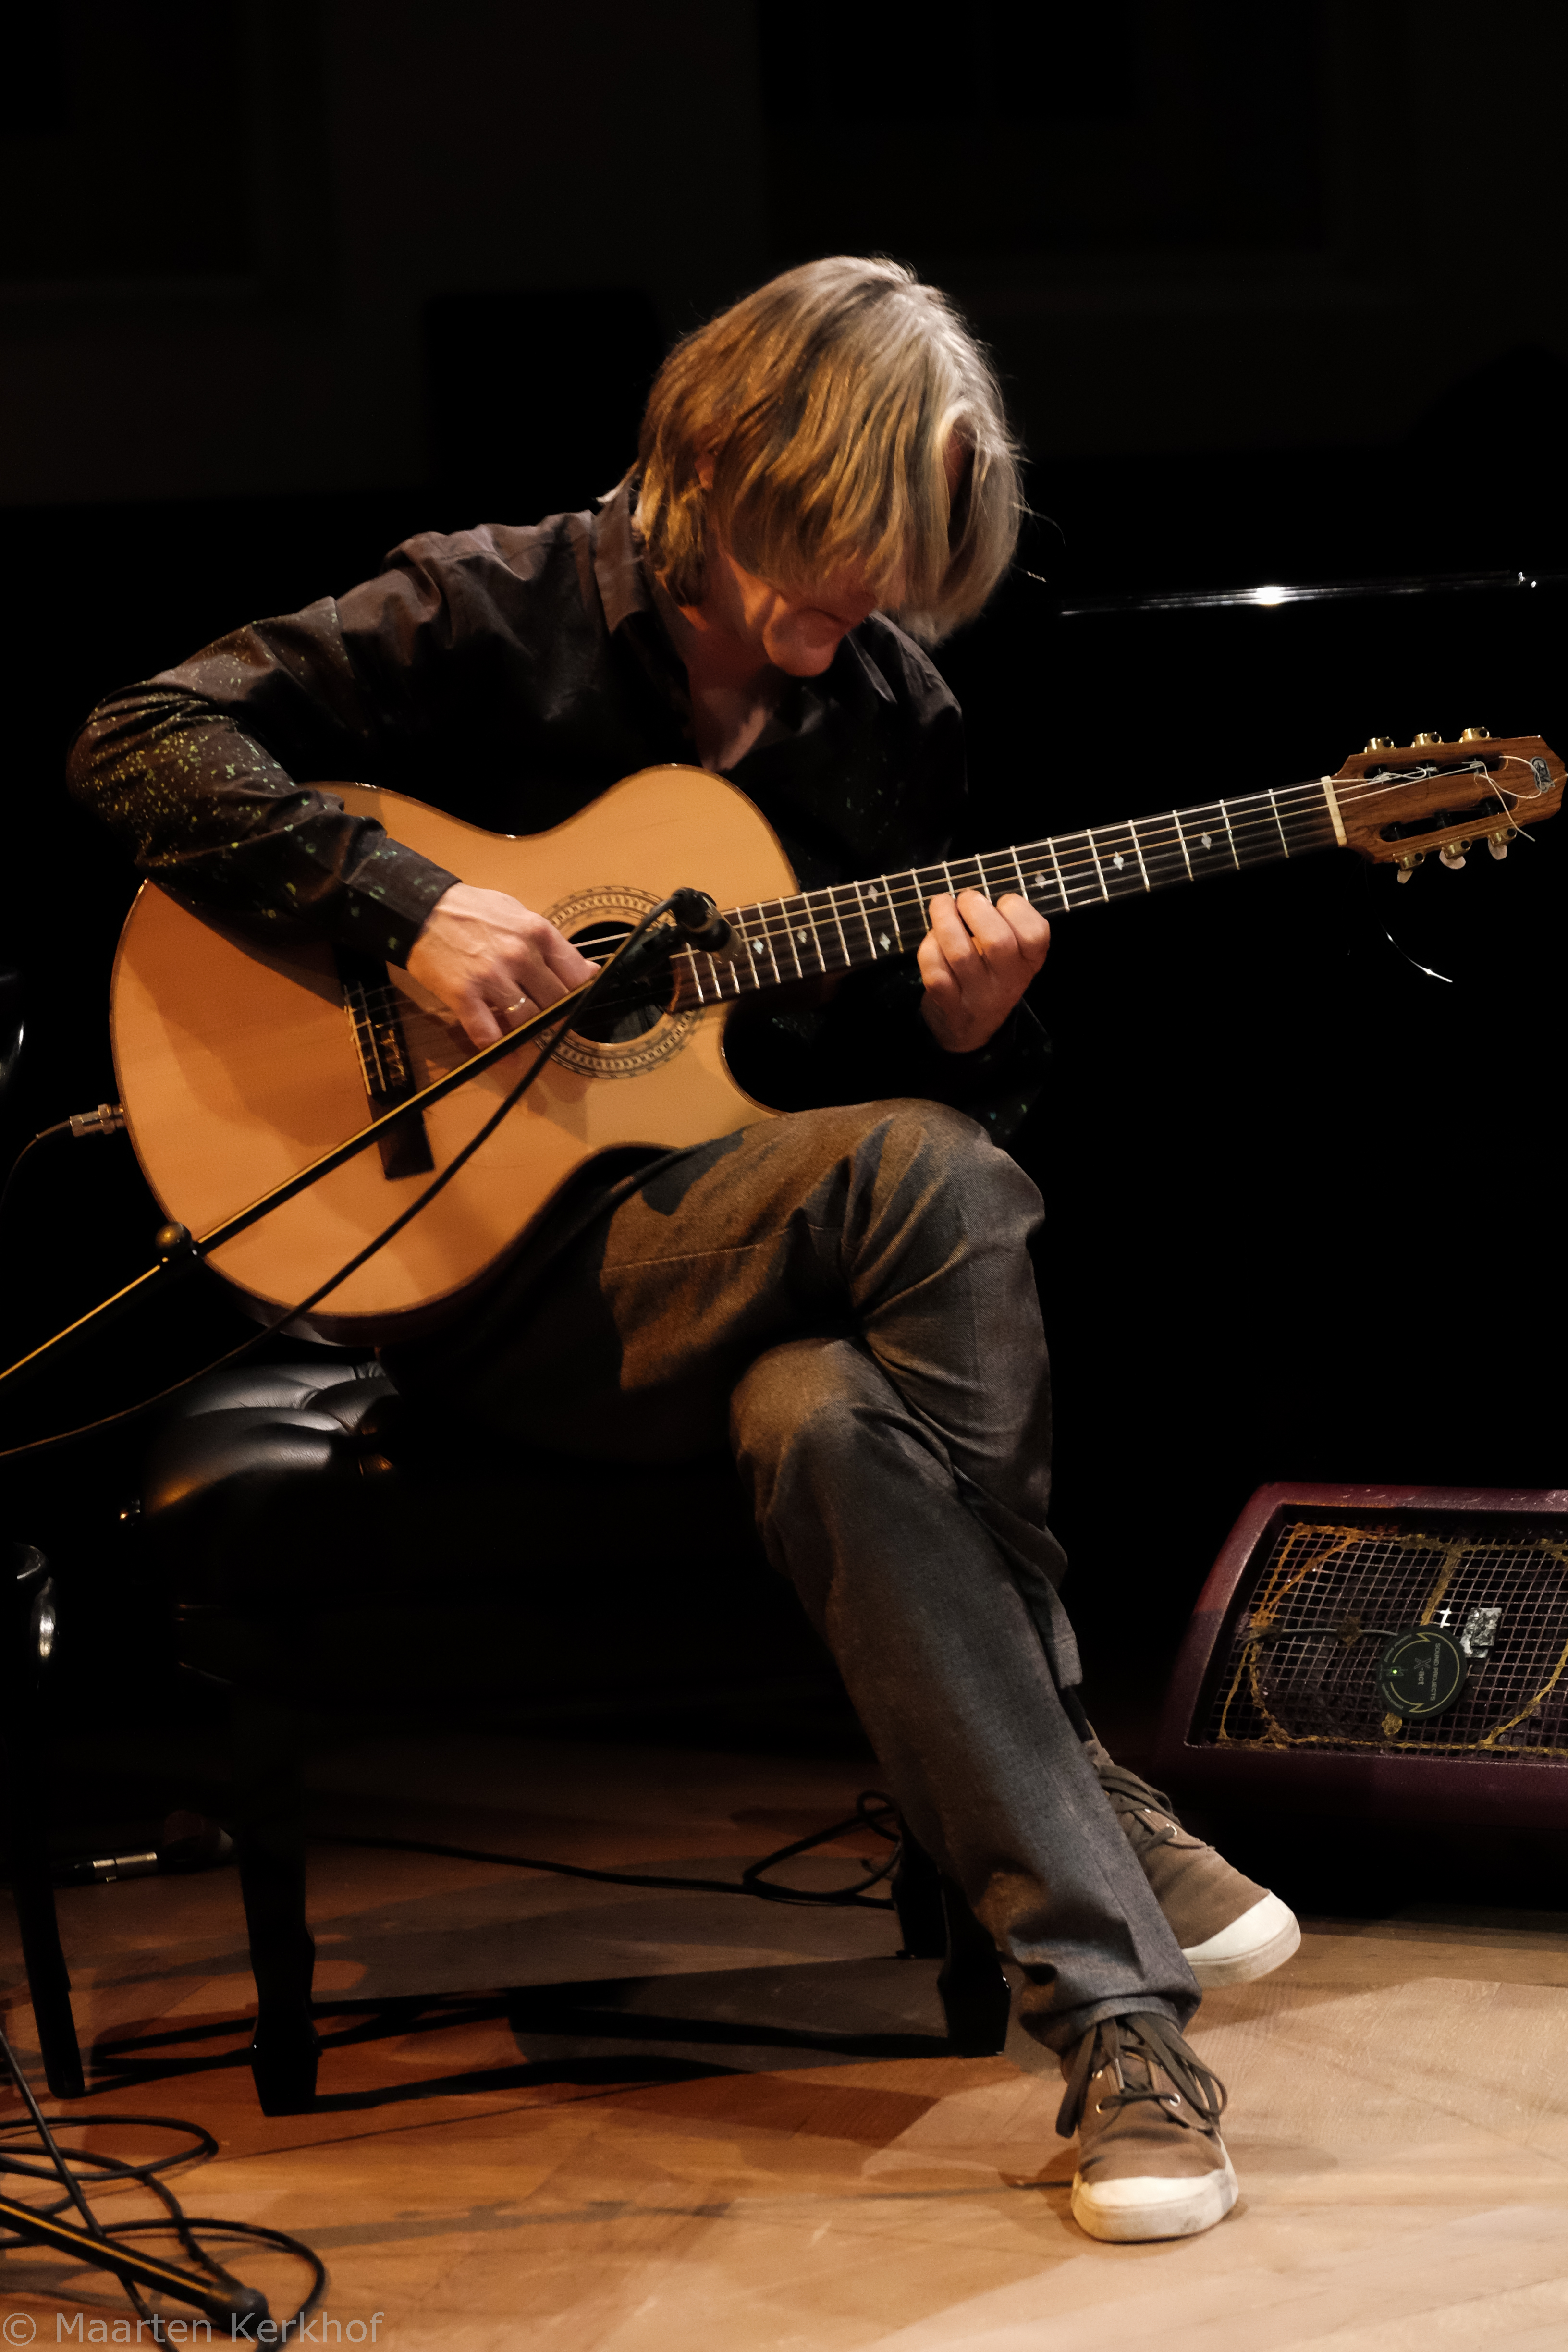 Trytone 20 - Niels Brouwer